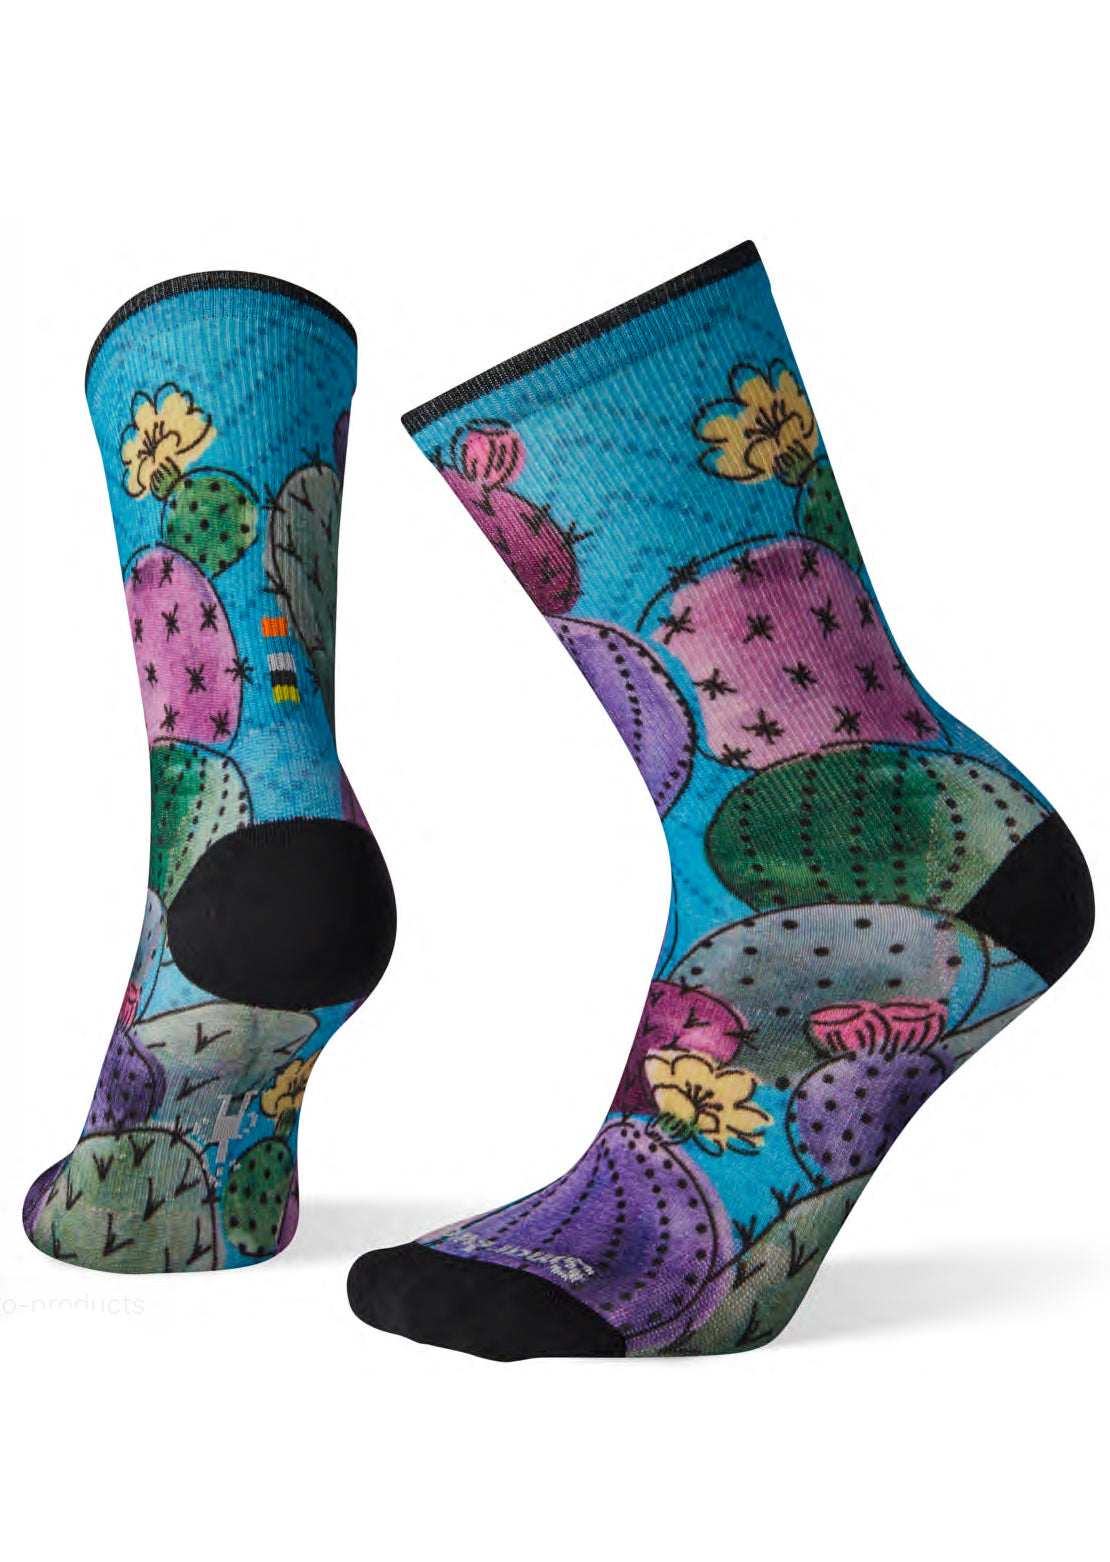 Smartwool Women's Curated Cactus And Flowers Print Crew Socks Multi